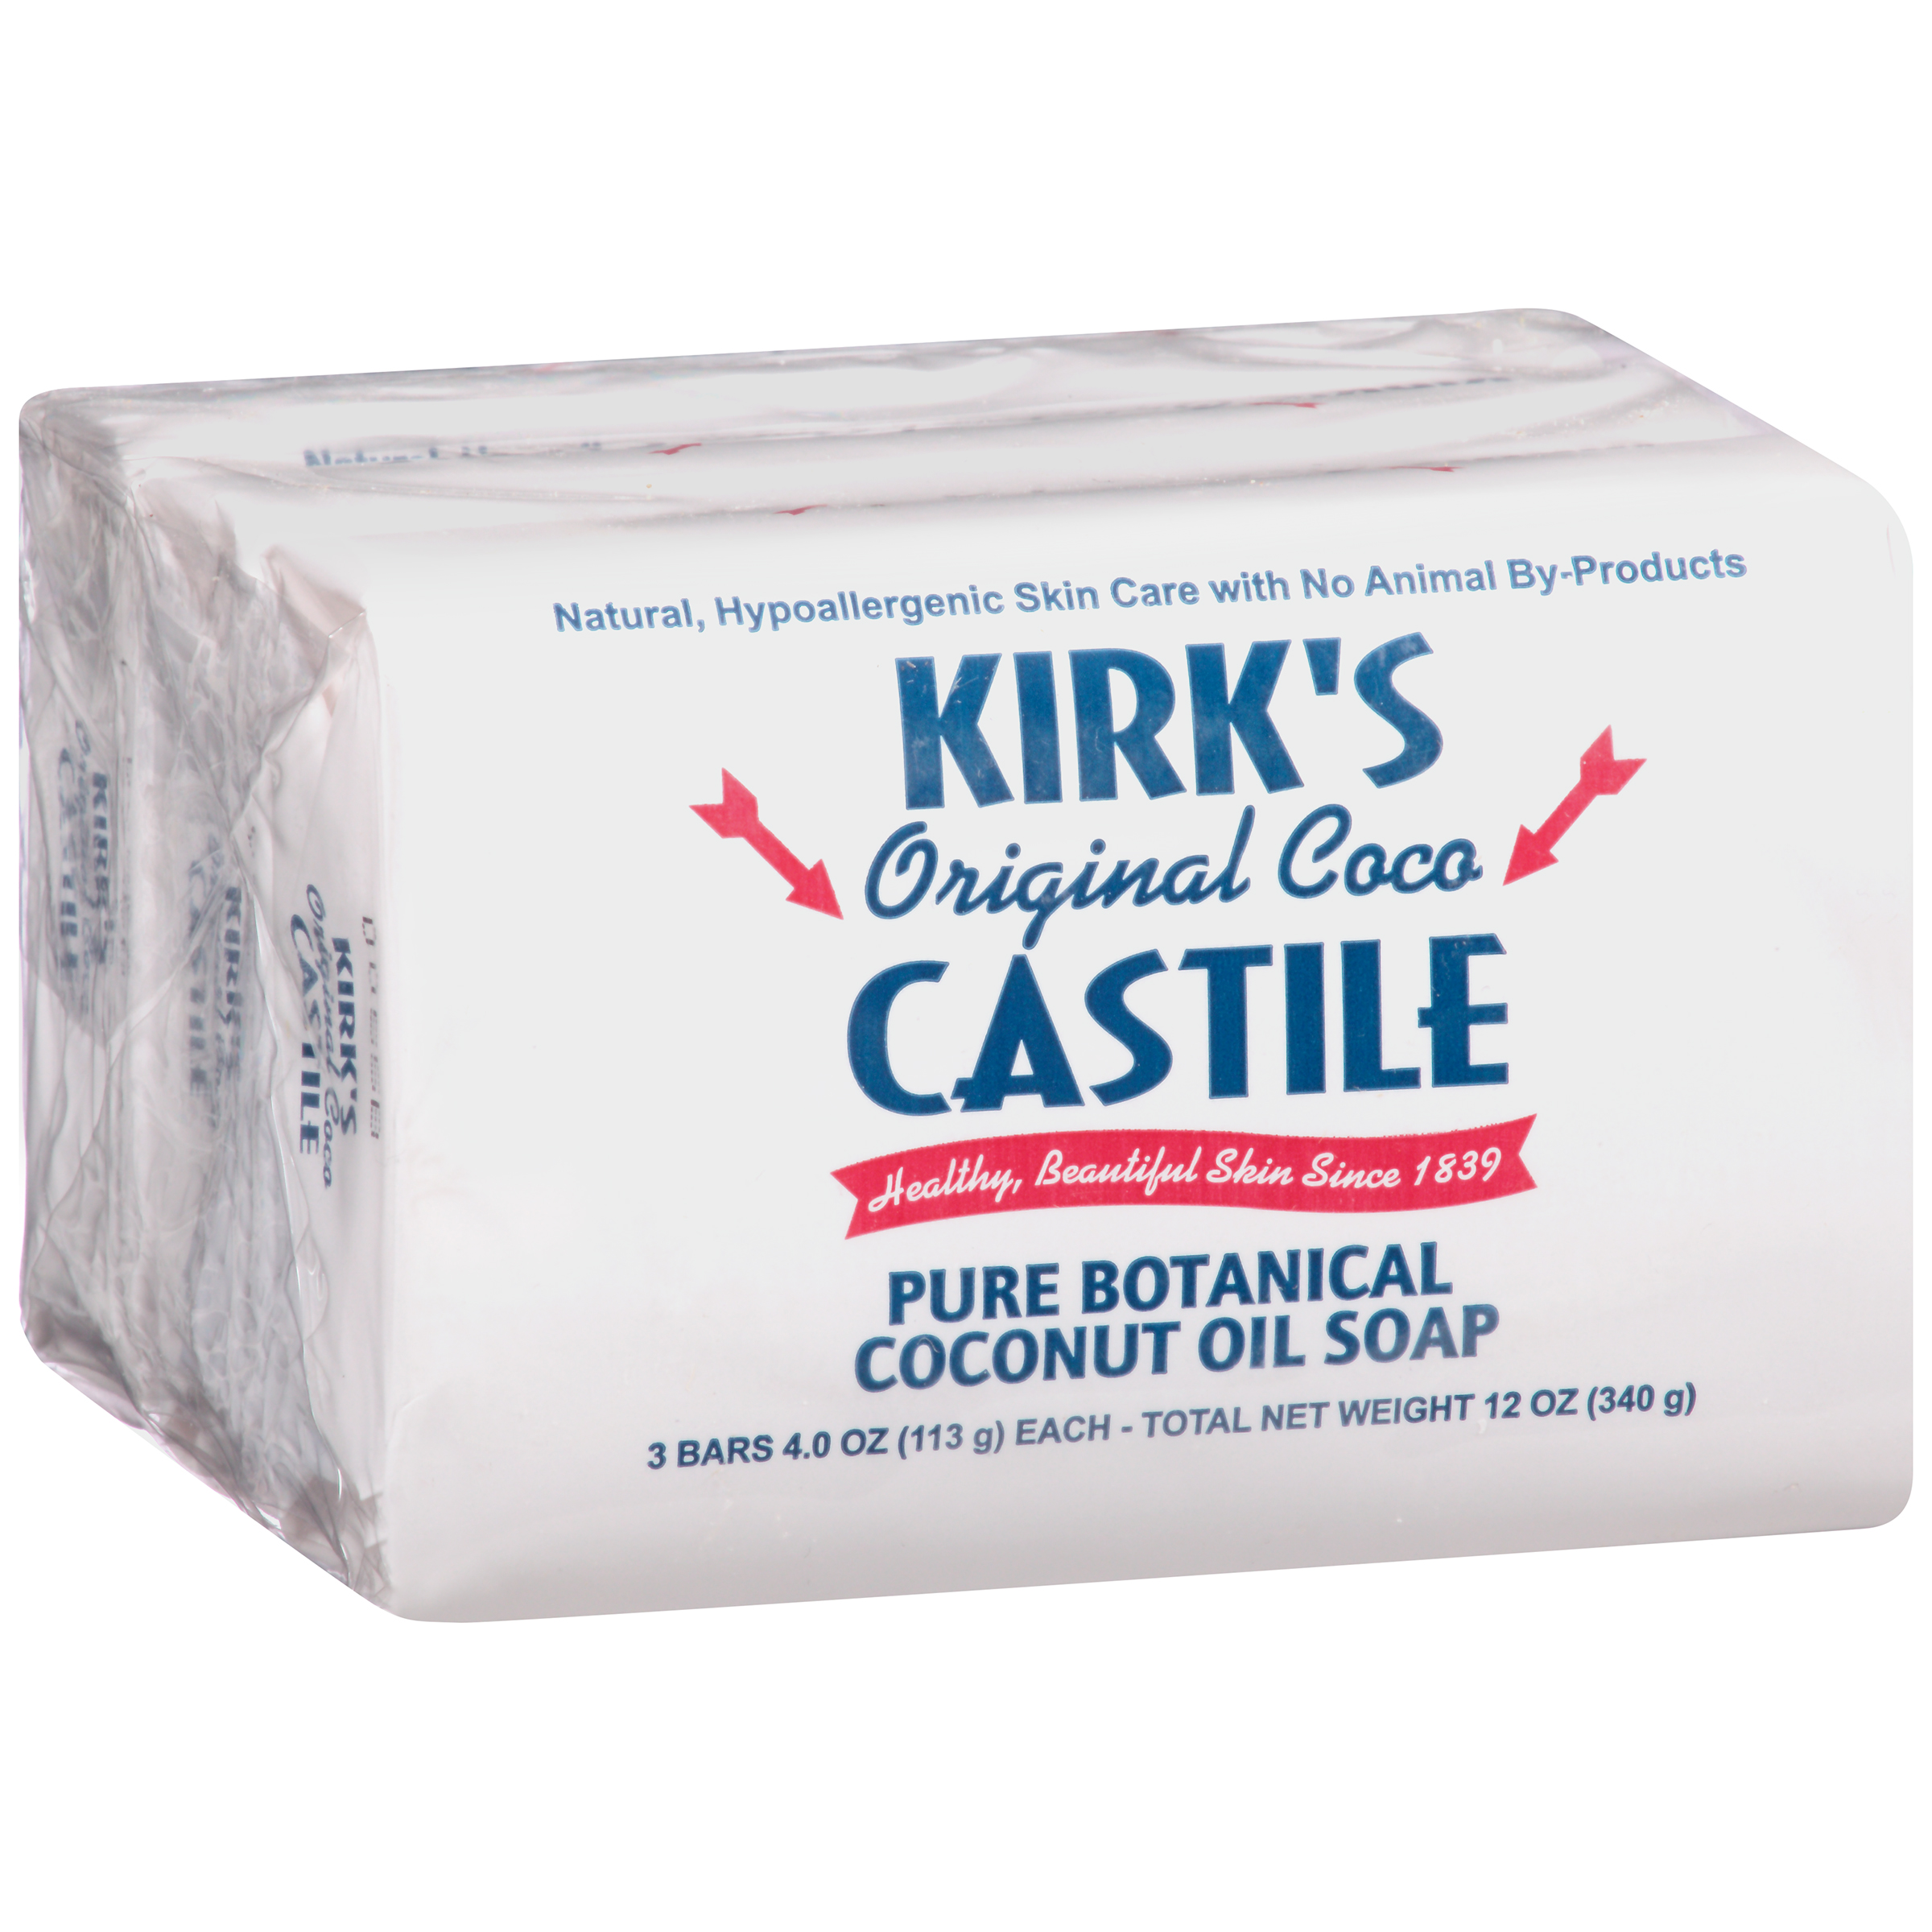 (4 pack) Kirk's Original Coco Castile Natural Bar Soap, 4 oz, 3 count